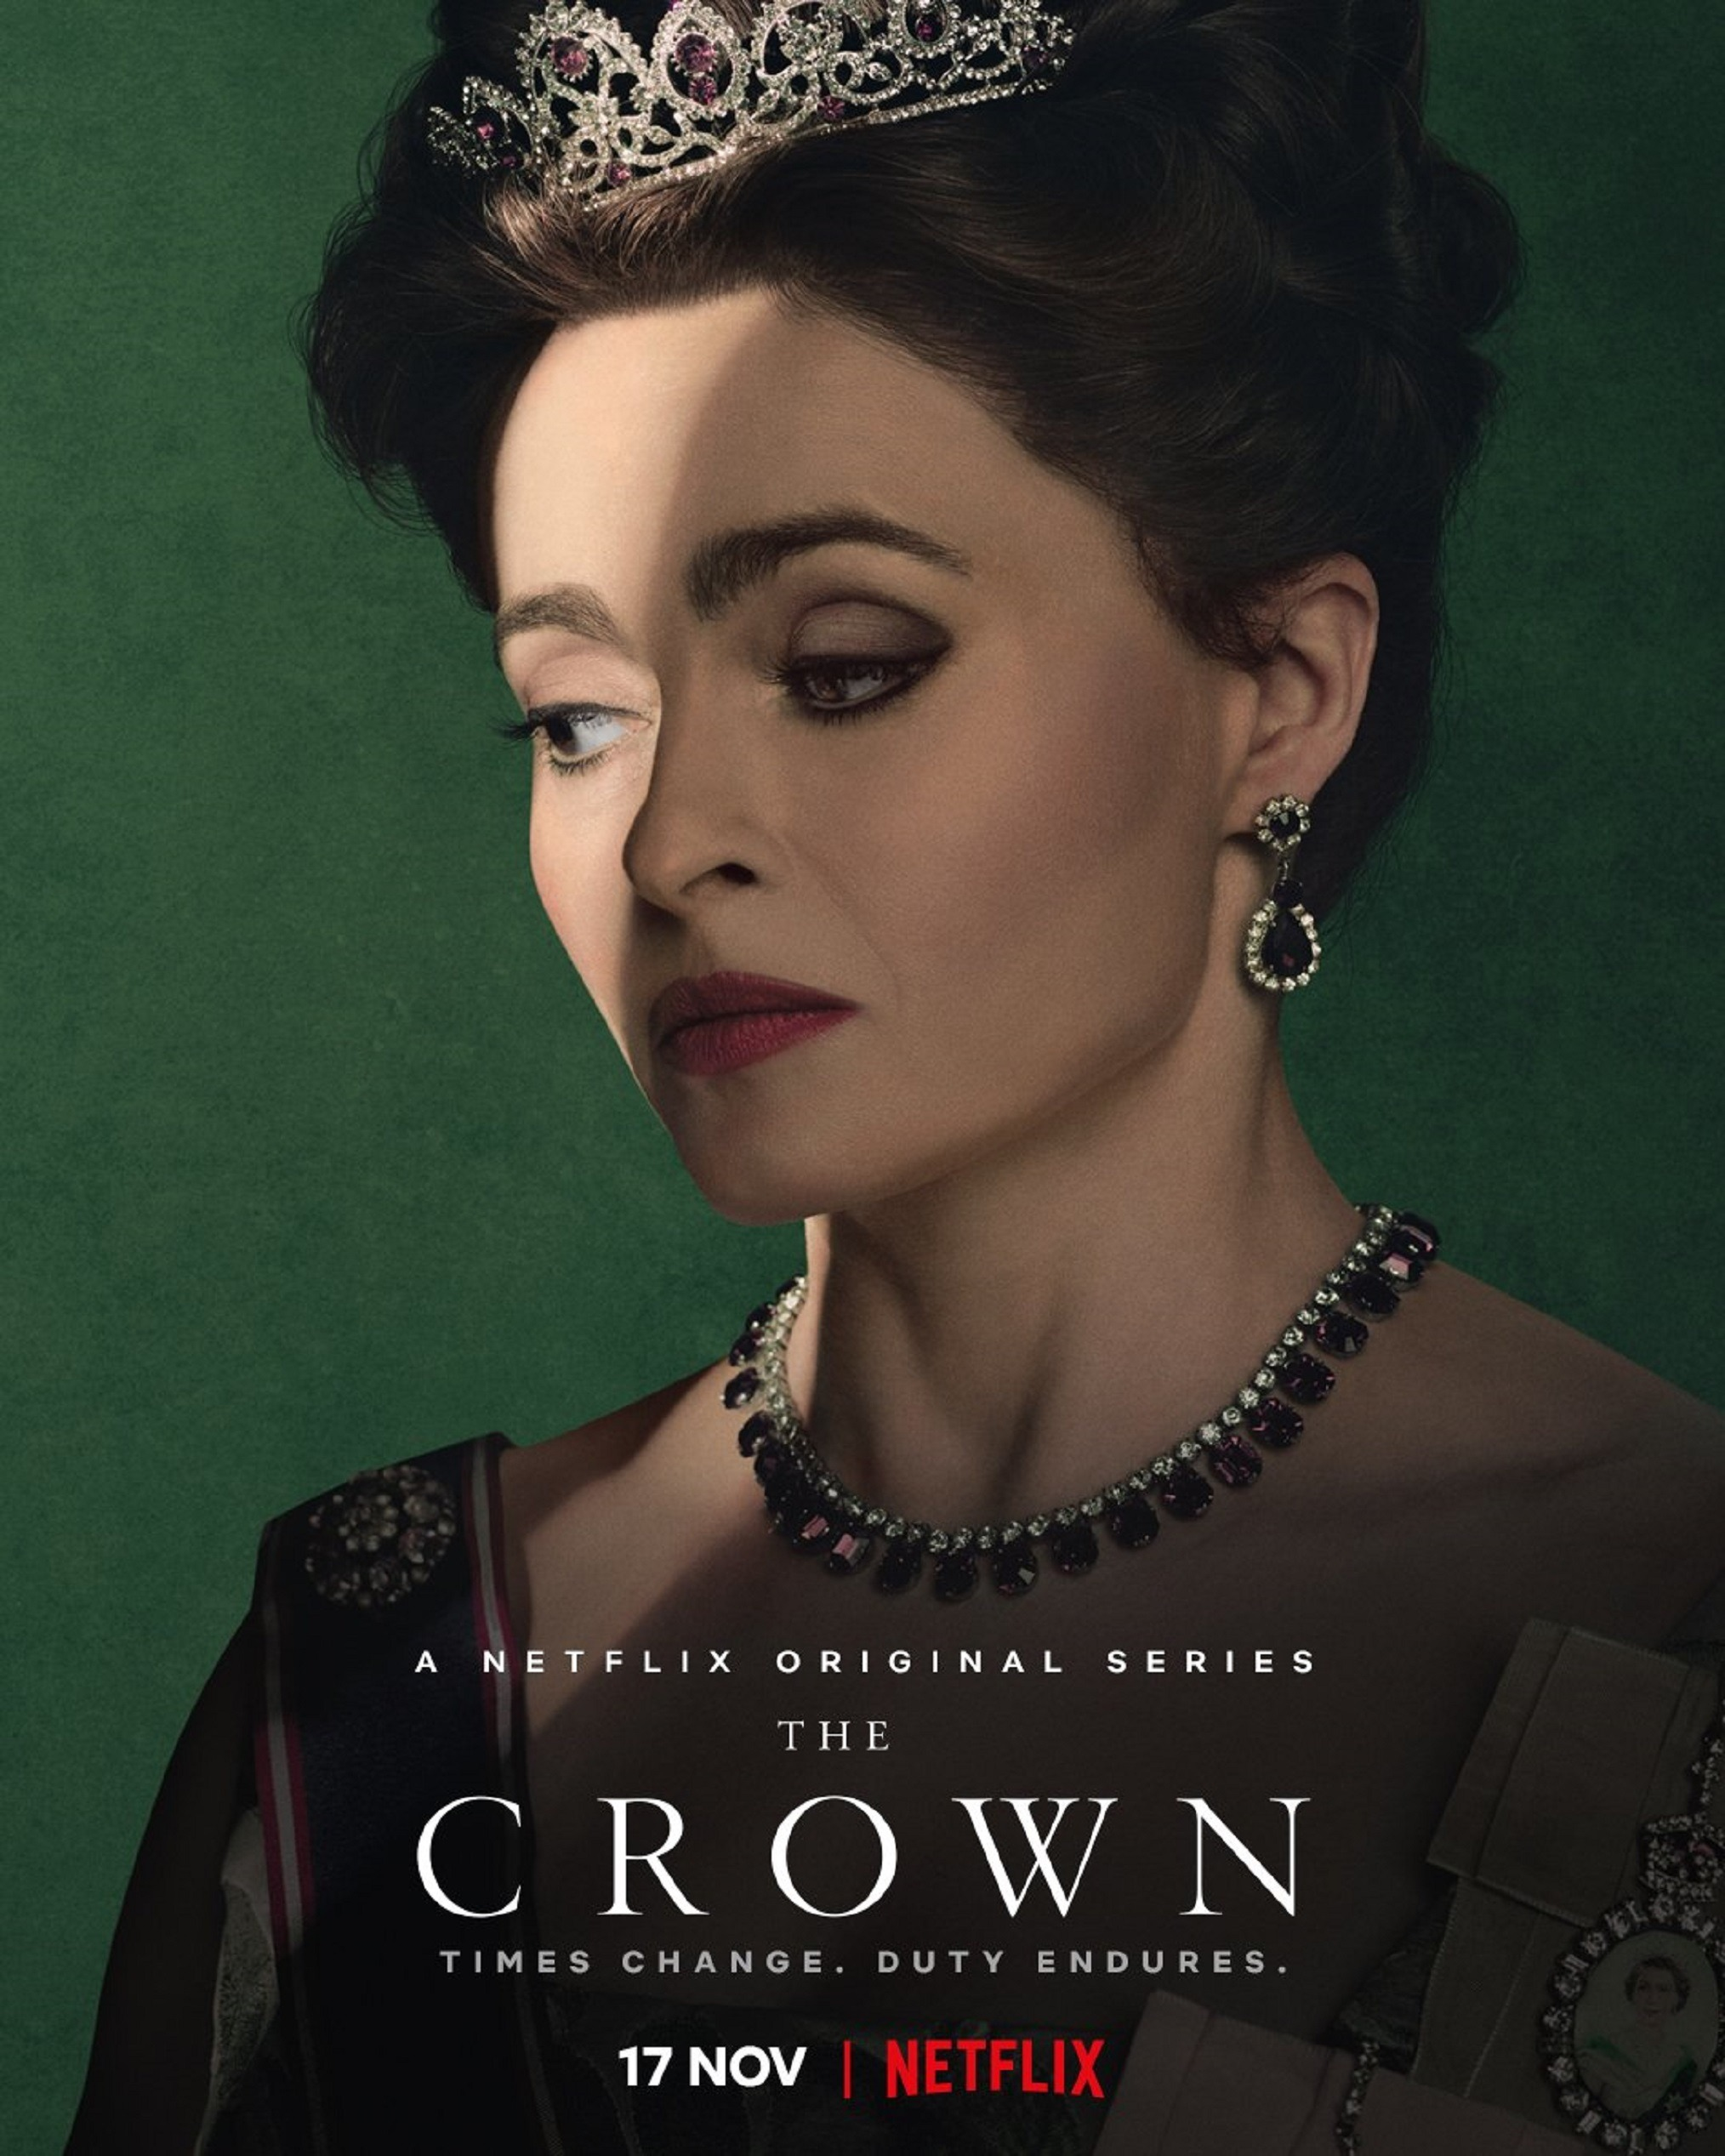 Netflix The Crown Season 3 Character Posters Helena Bonham Carter as Princess Margaret